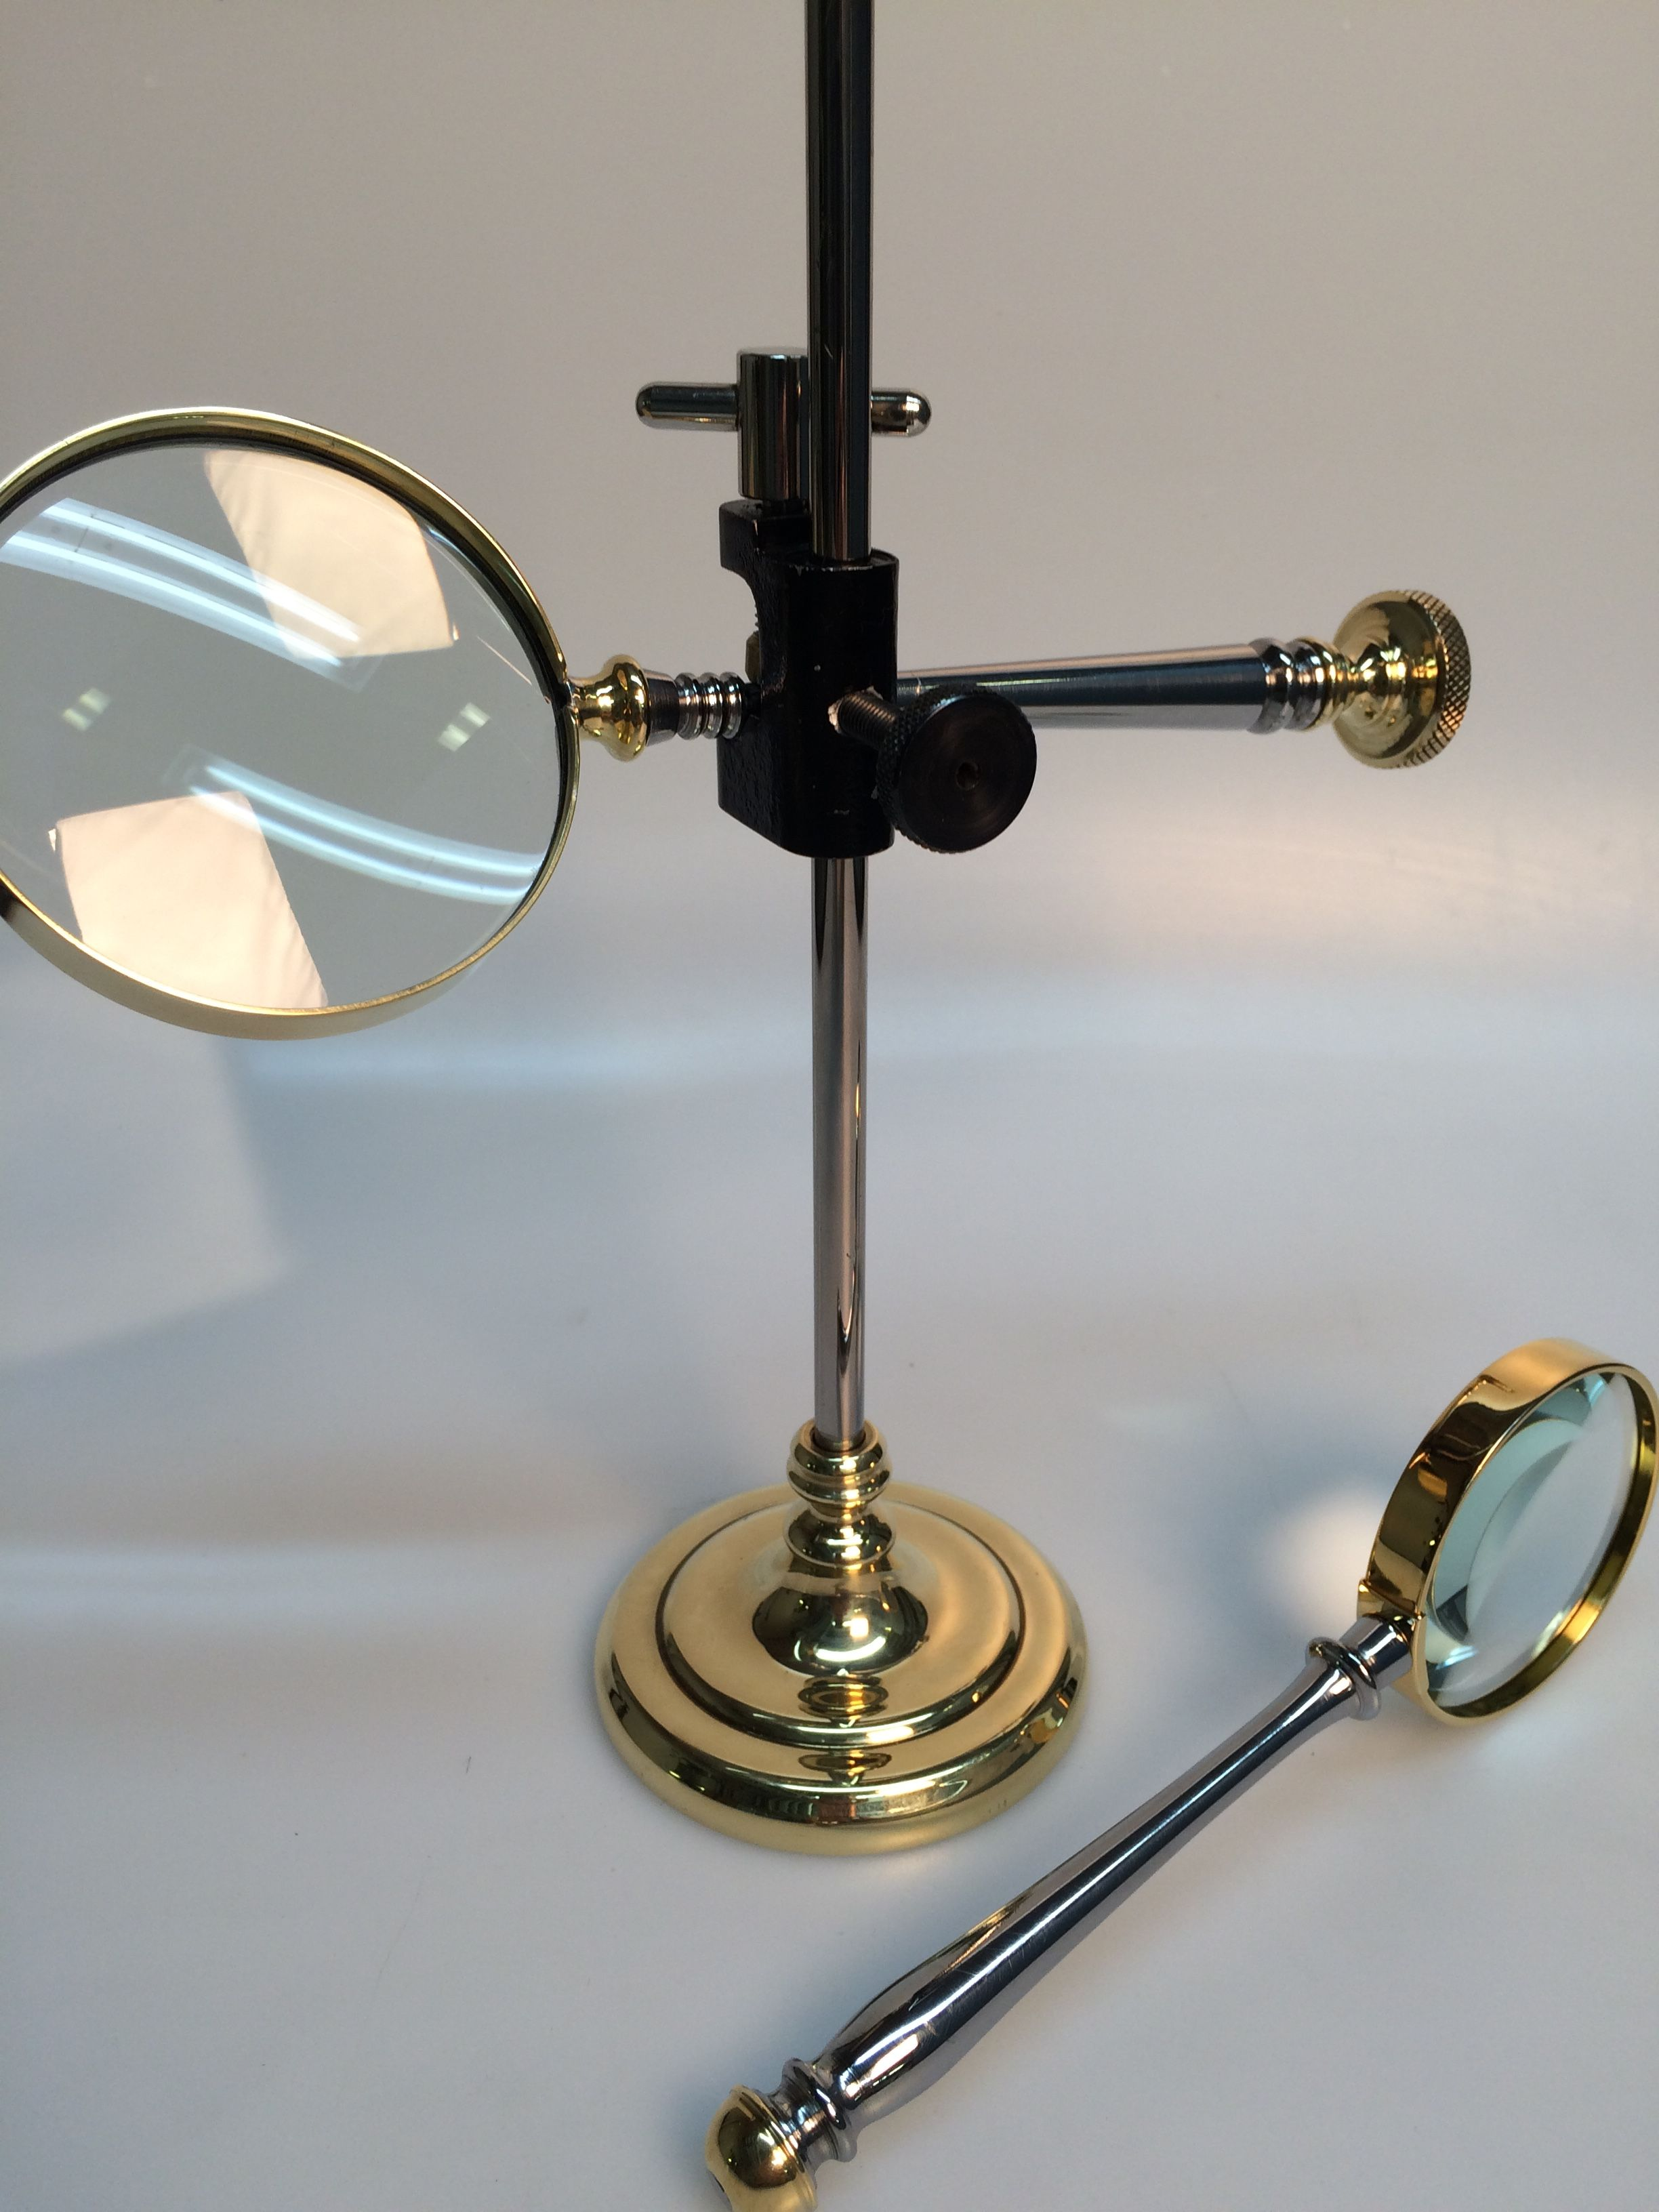 Magnifying Glass With Stand 돋보기 렌즈